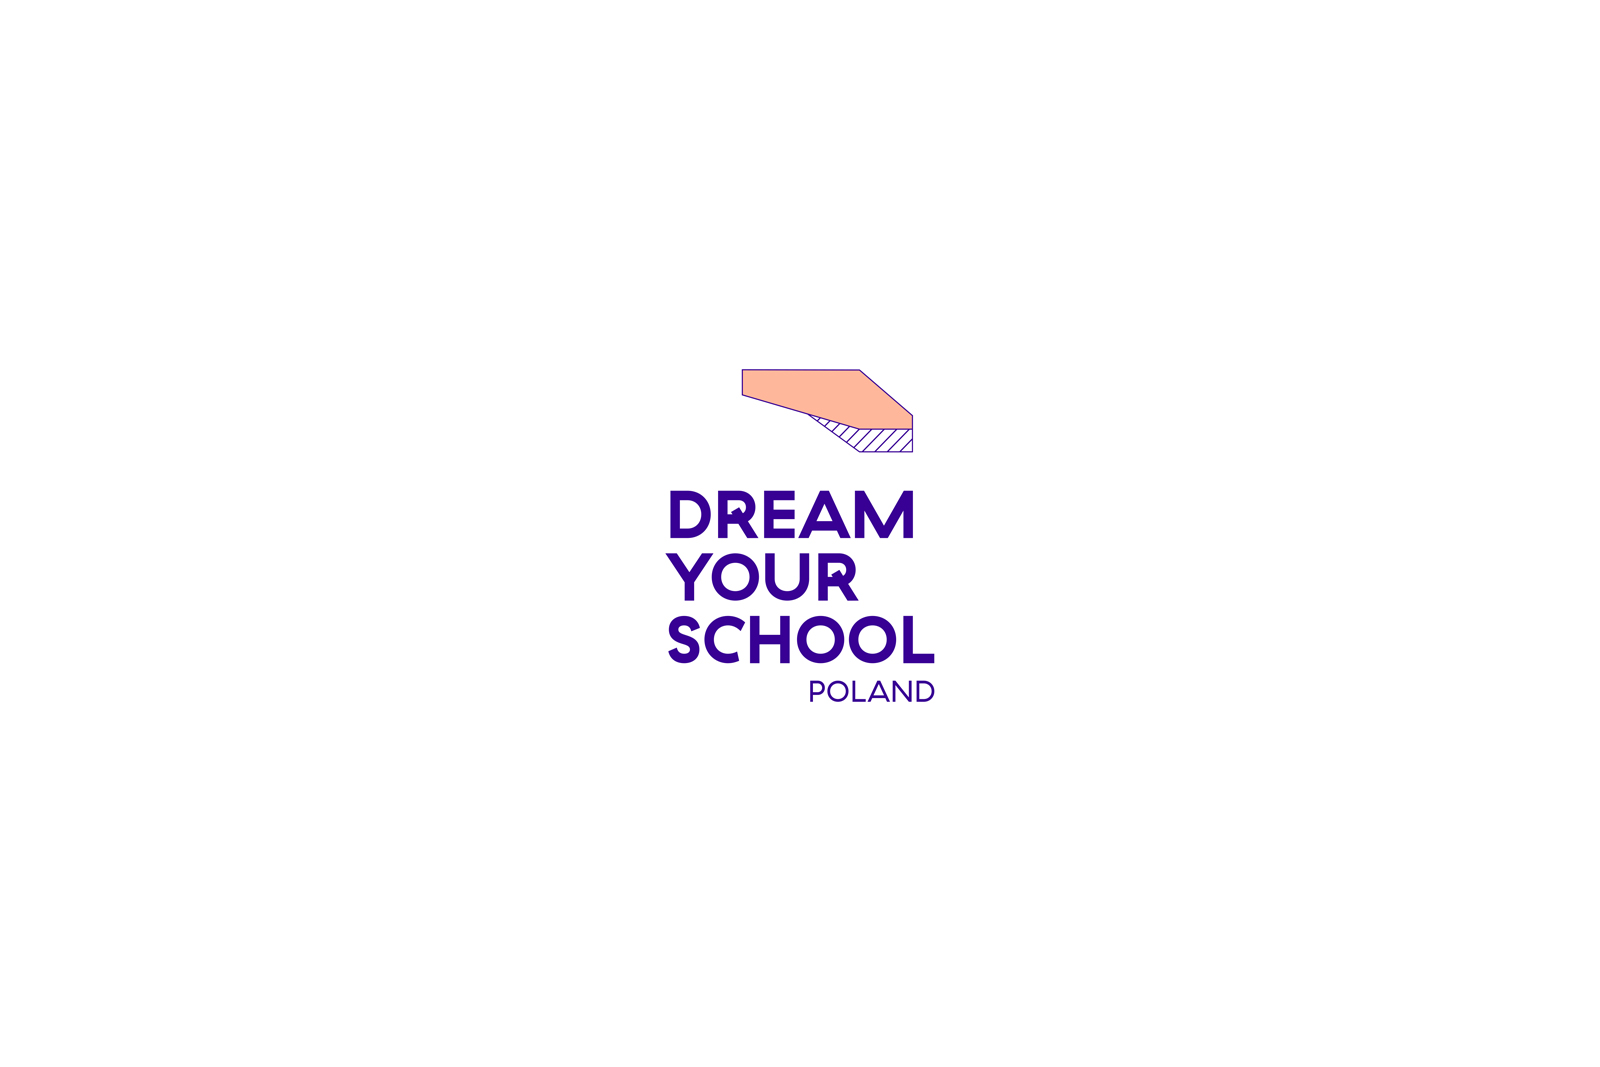 Dream Your School